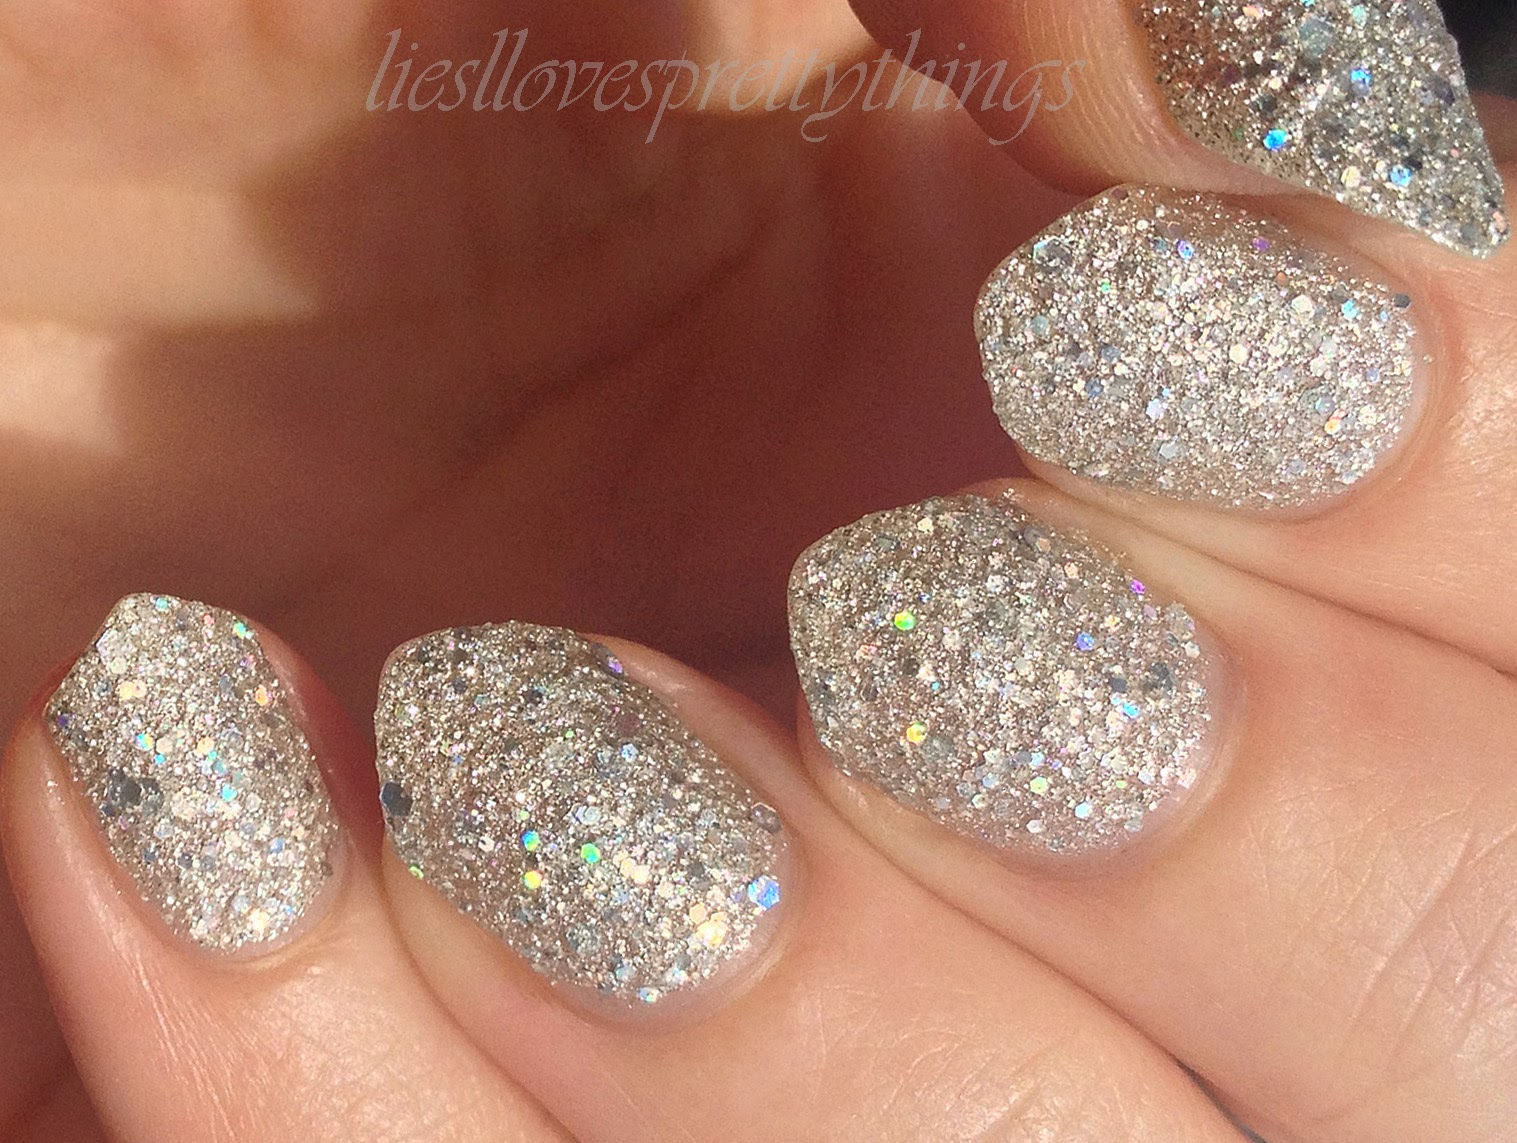 Zoya Magical PixieDusts Cosmo swatch and review